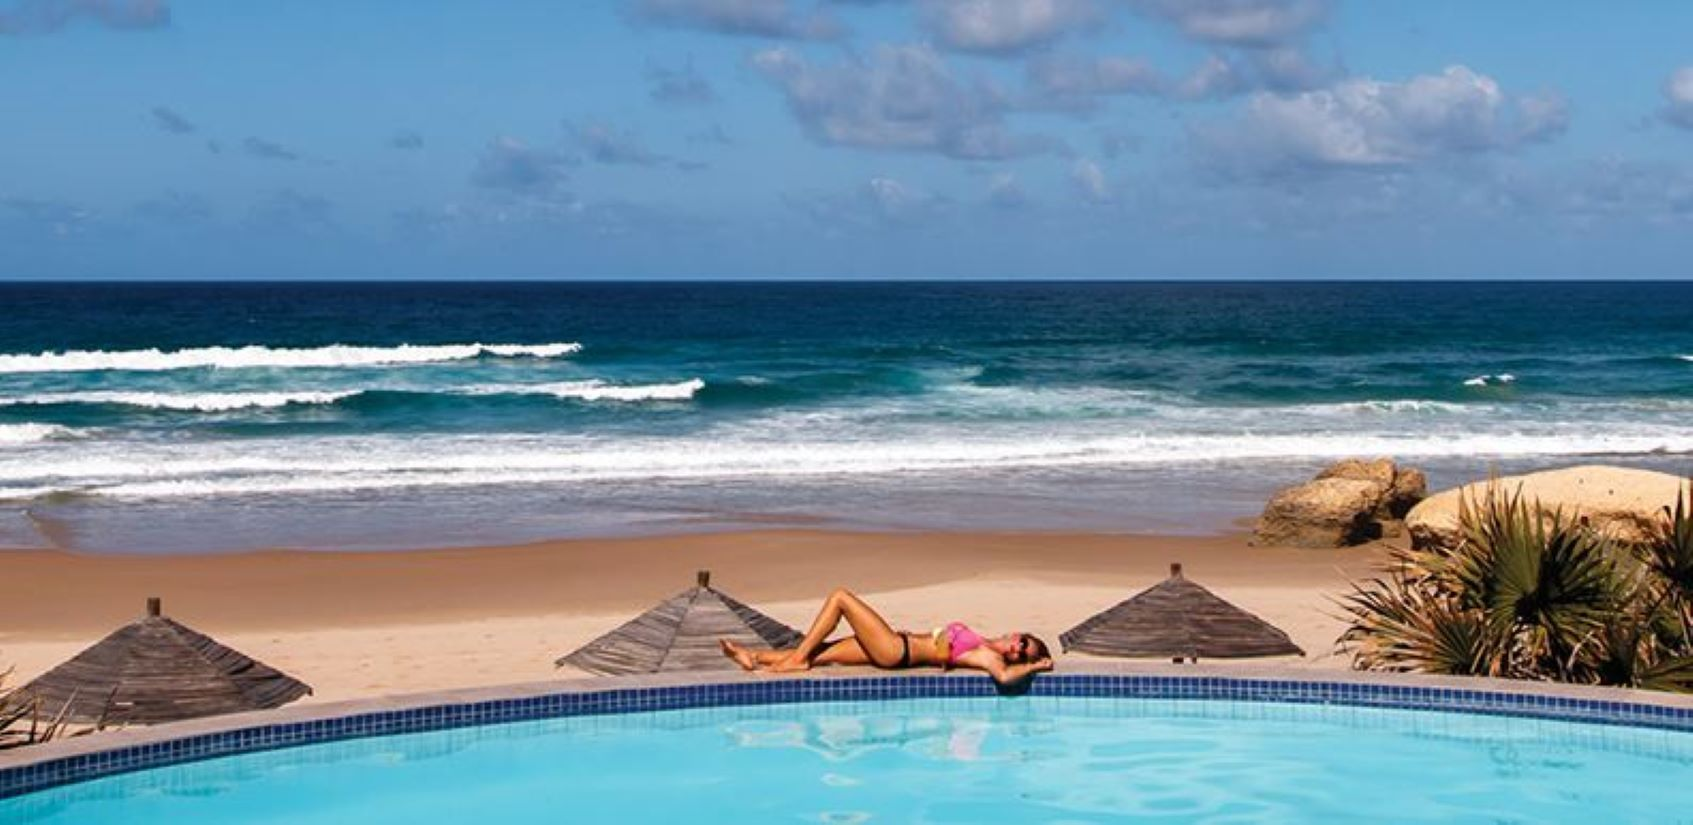 Massinga-Beach-Resort-Mozambique-Boland-Travel